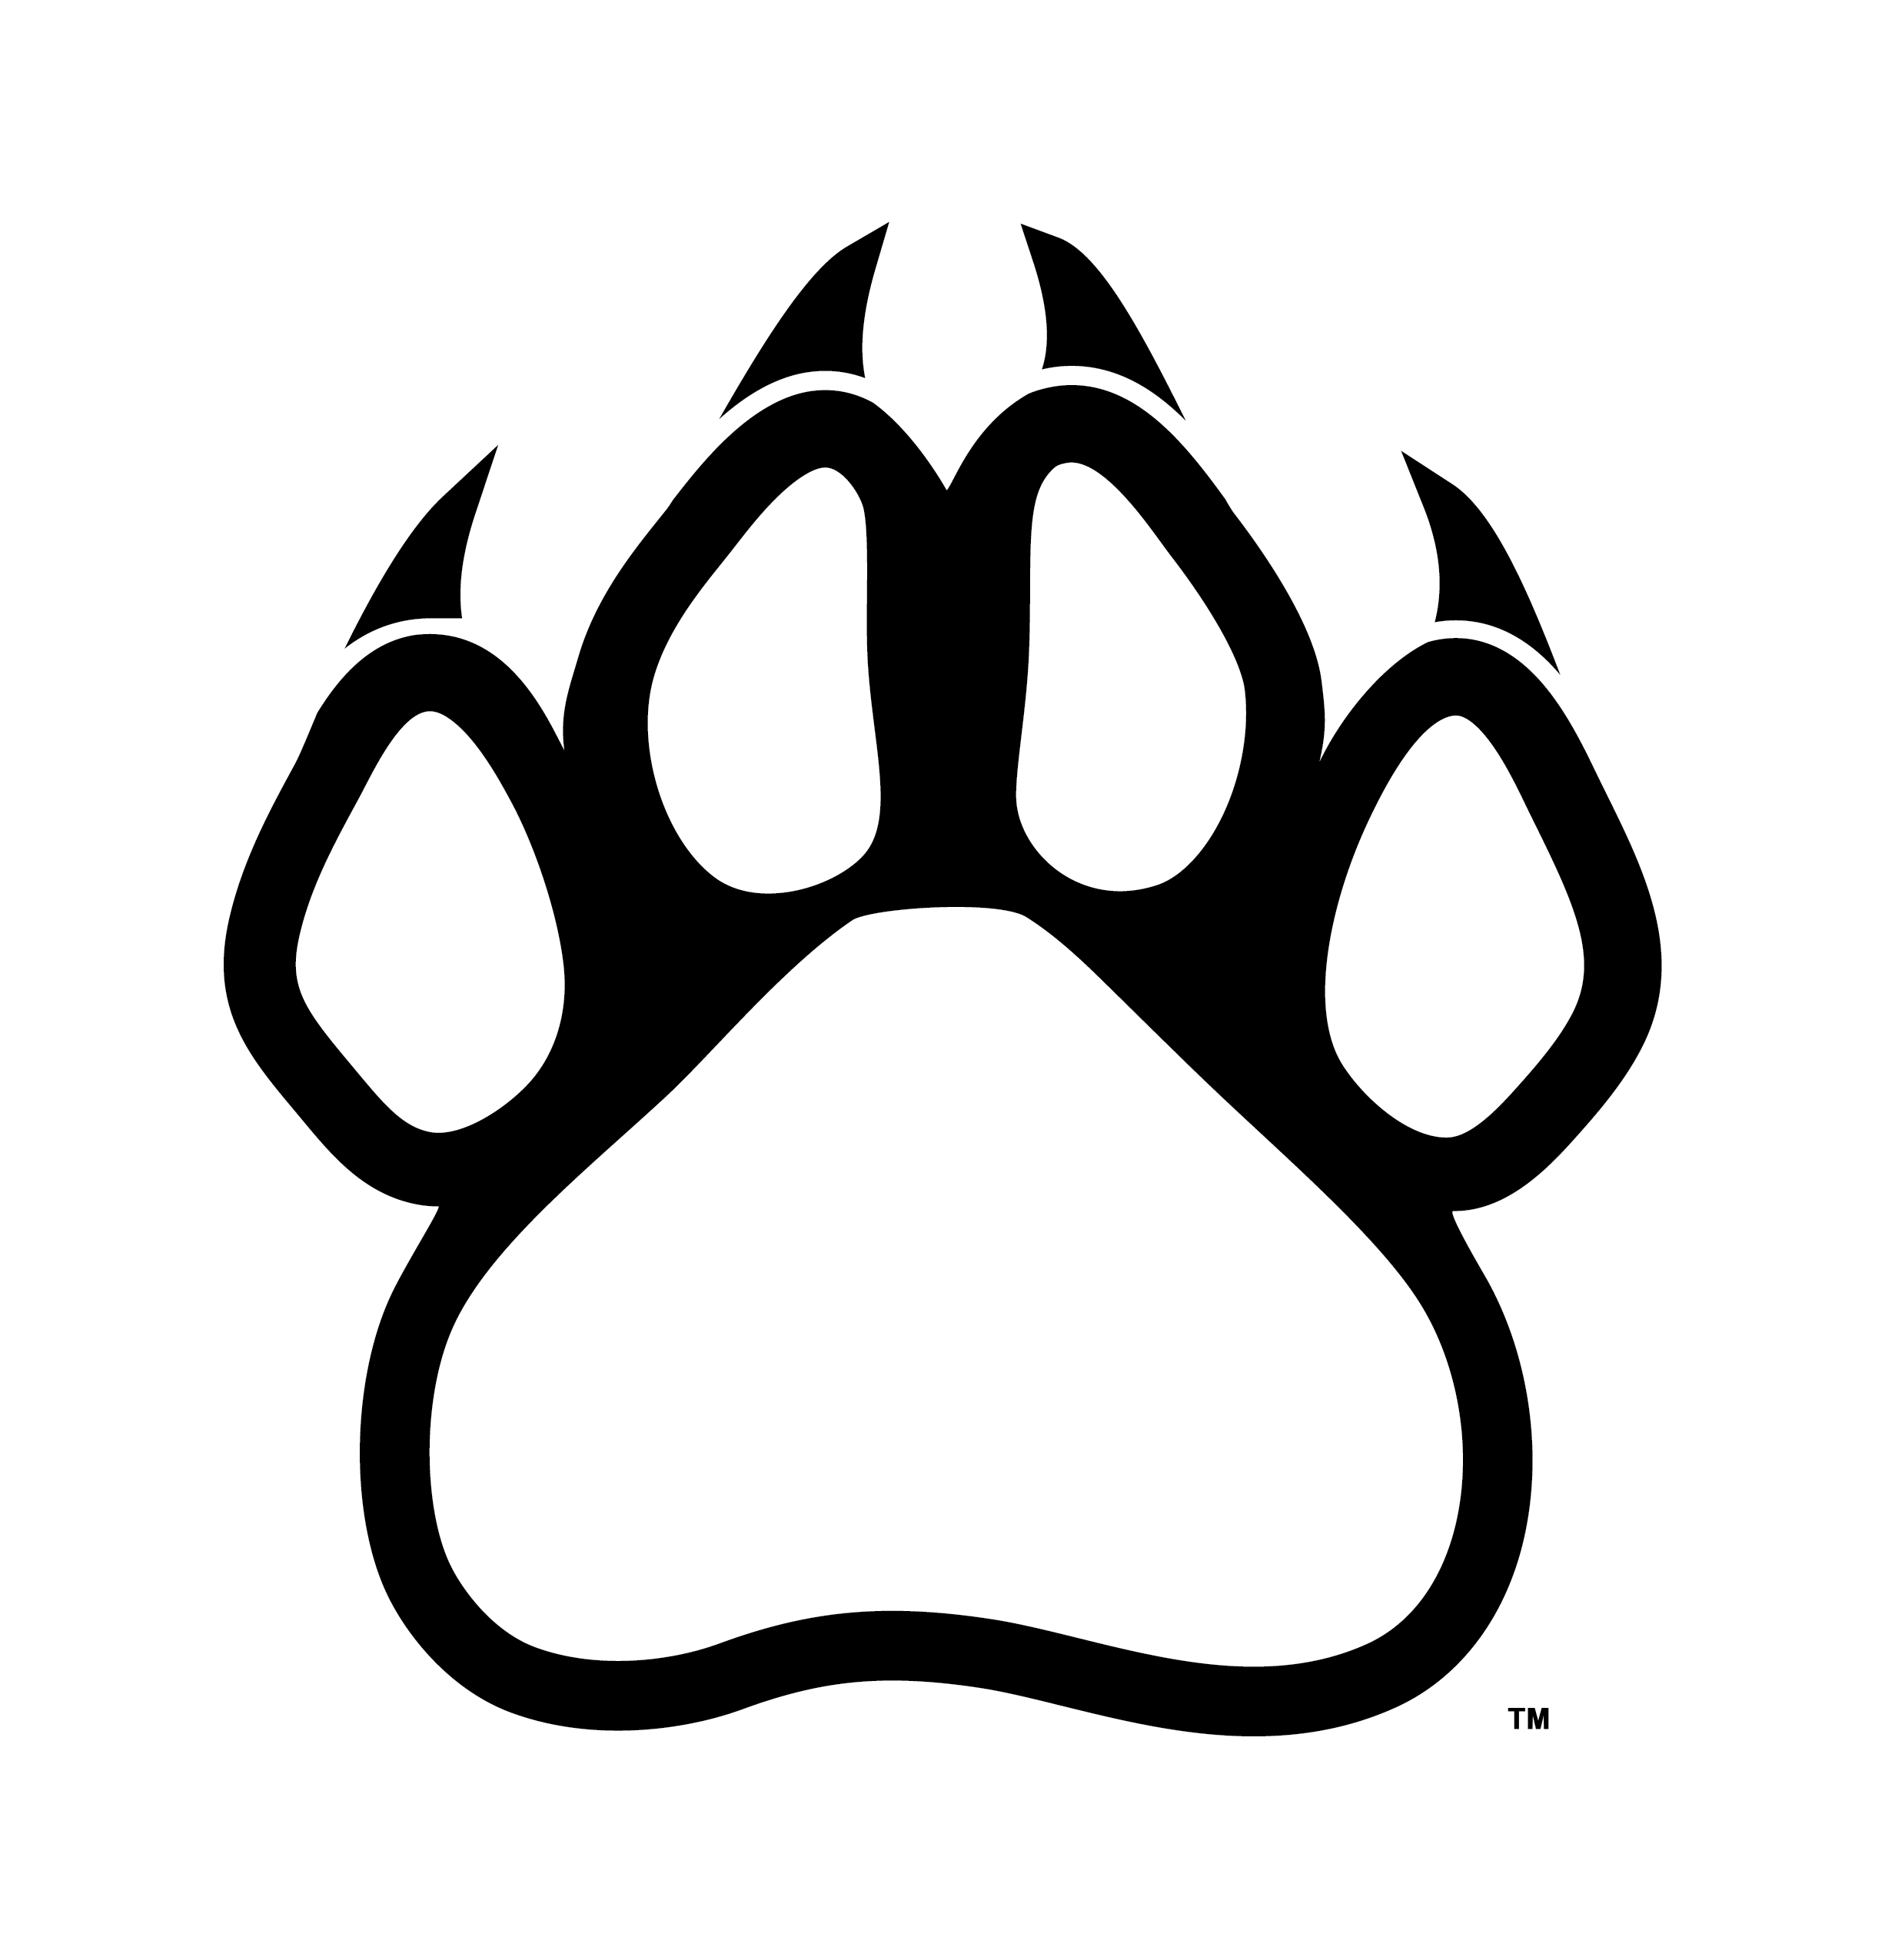 Paw Print Outline Clip Art Cliparts Co Wolf Paw Print Wolf Outline Wolf Paw